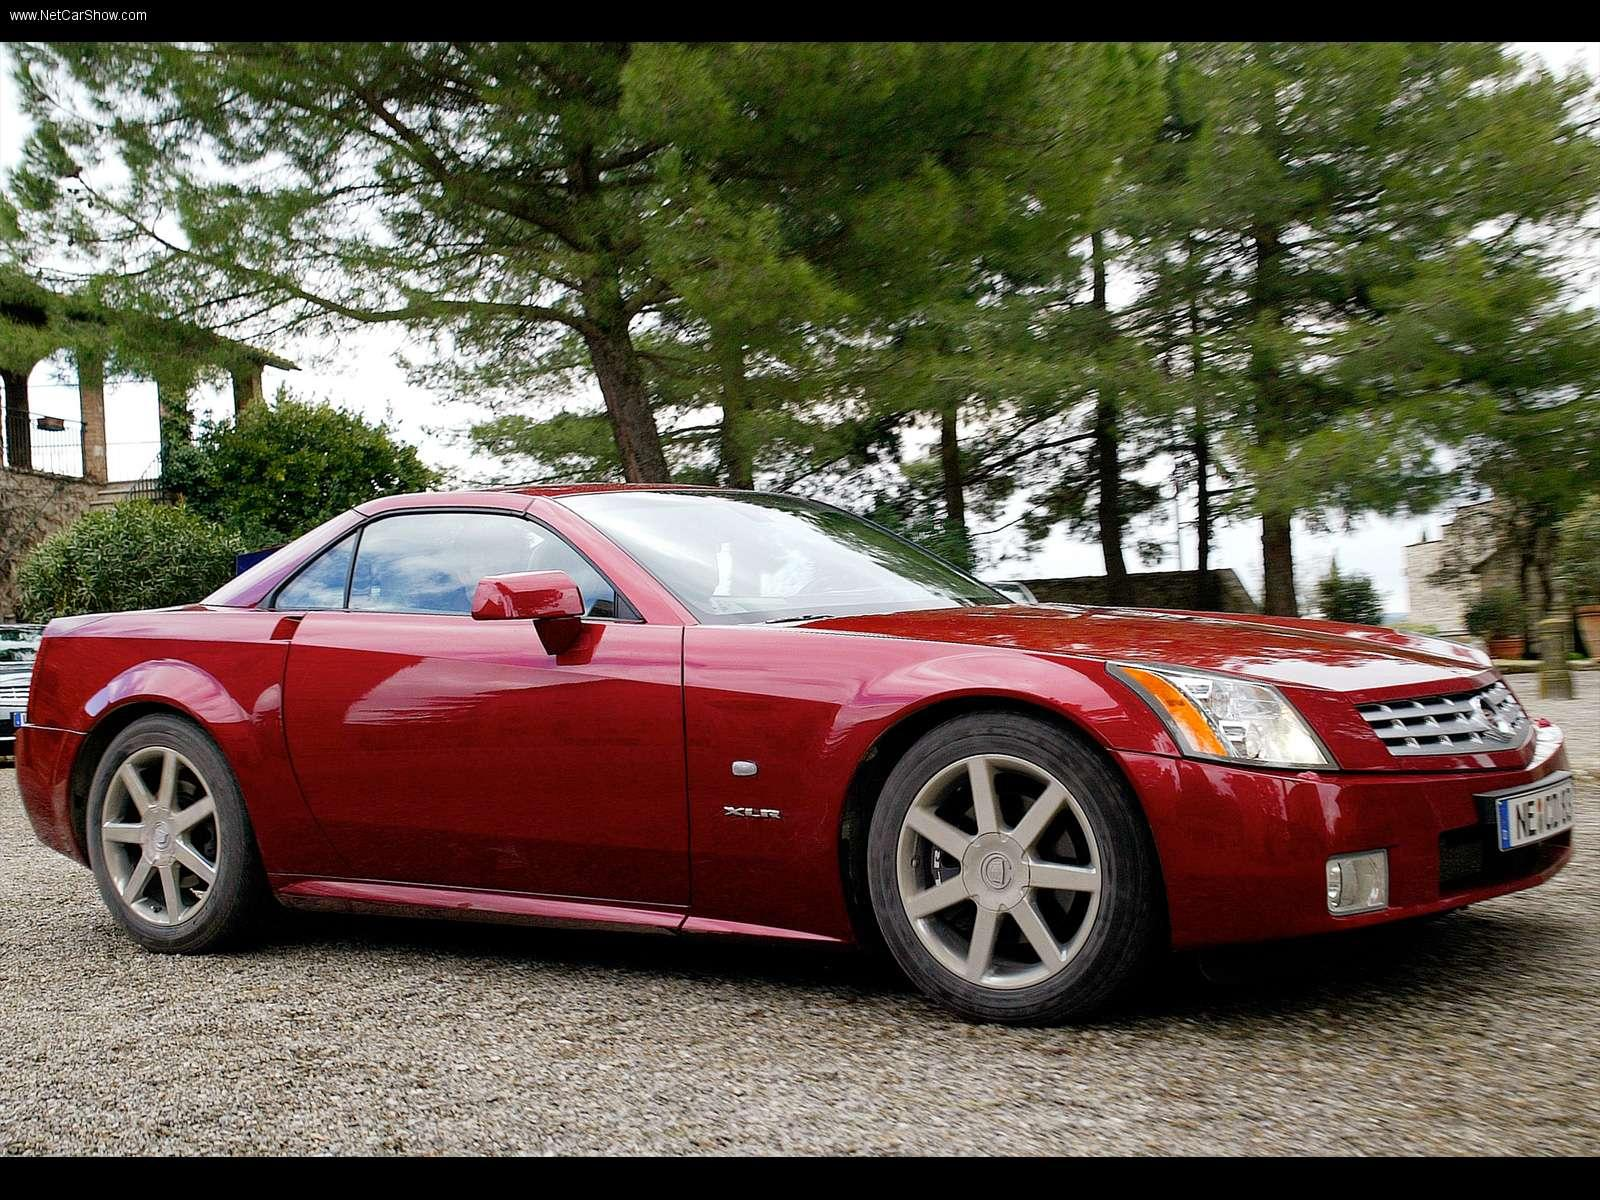 Wiring Diagram Cadillac Xlr Diagrams Schematics 2013 Srx Terrific 2006 Photos Best Image On Microphone